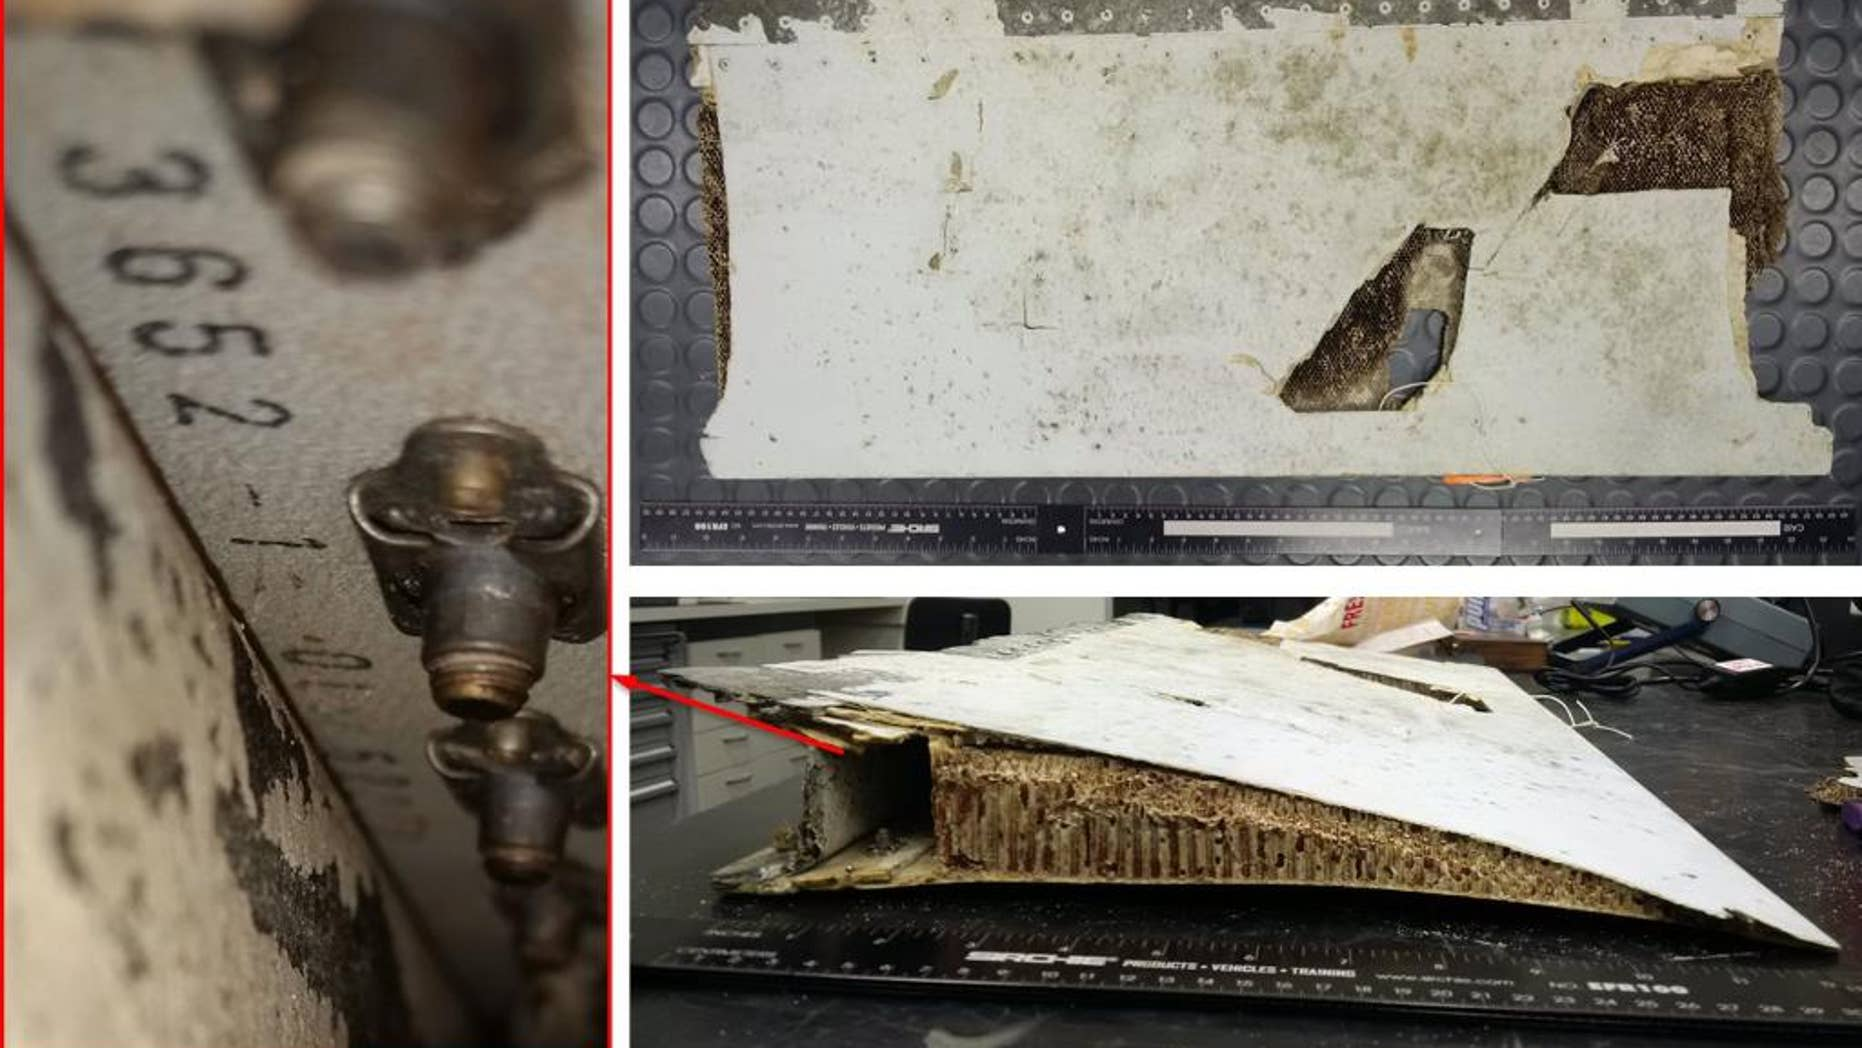 This combination of three photos taken Friday, Oct. 7, 2016 and released by Australian Transport Safety Bureau shows a piece of aircraft debris stored at the ATSB laboratory in Canberra, Australia. Malaysian and Australian officials say this piece of an aircraft wing found on the Indian Ocean island of Mauritius has been identified as belonging to missing Malaysia Airlines Flight 370. The piece of wing flap was found in May and subsequently analyzed by experts at the Australian Transport Safety Bureau, which is heading up the search for the plane in a remote stretch of ocean off Australia's west coast. The red arrow and markings are provided by the source. ( Australian Transport Safety Bureau via AP)